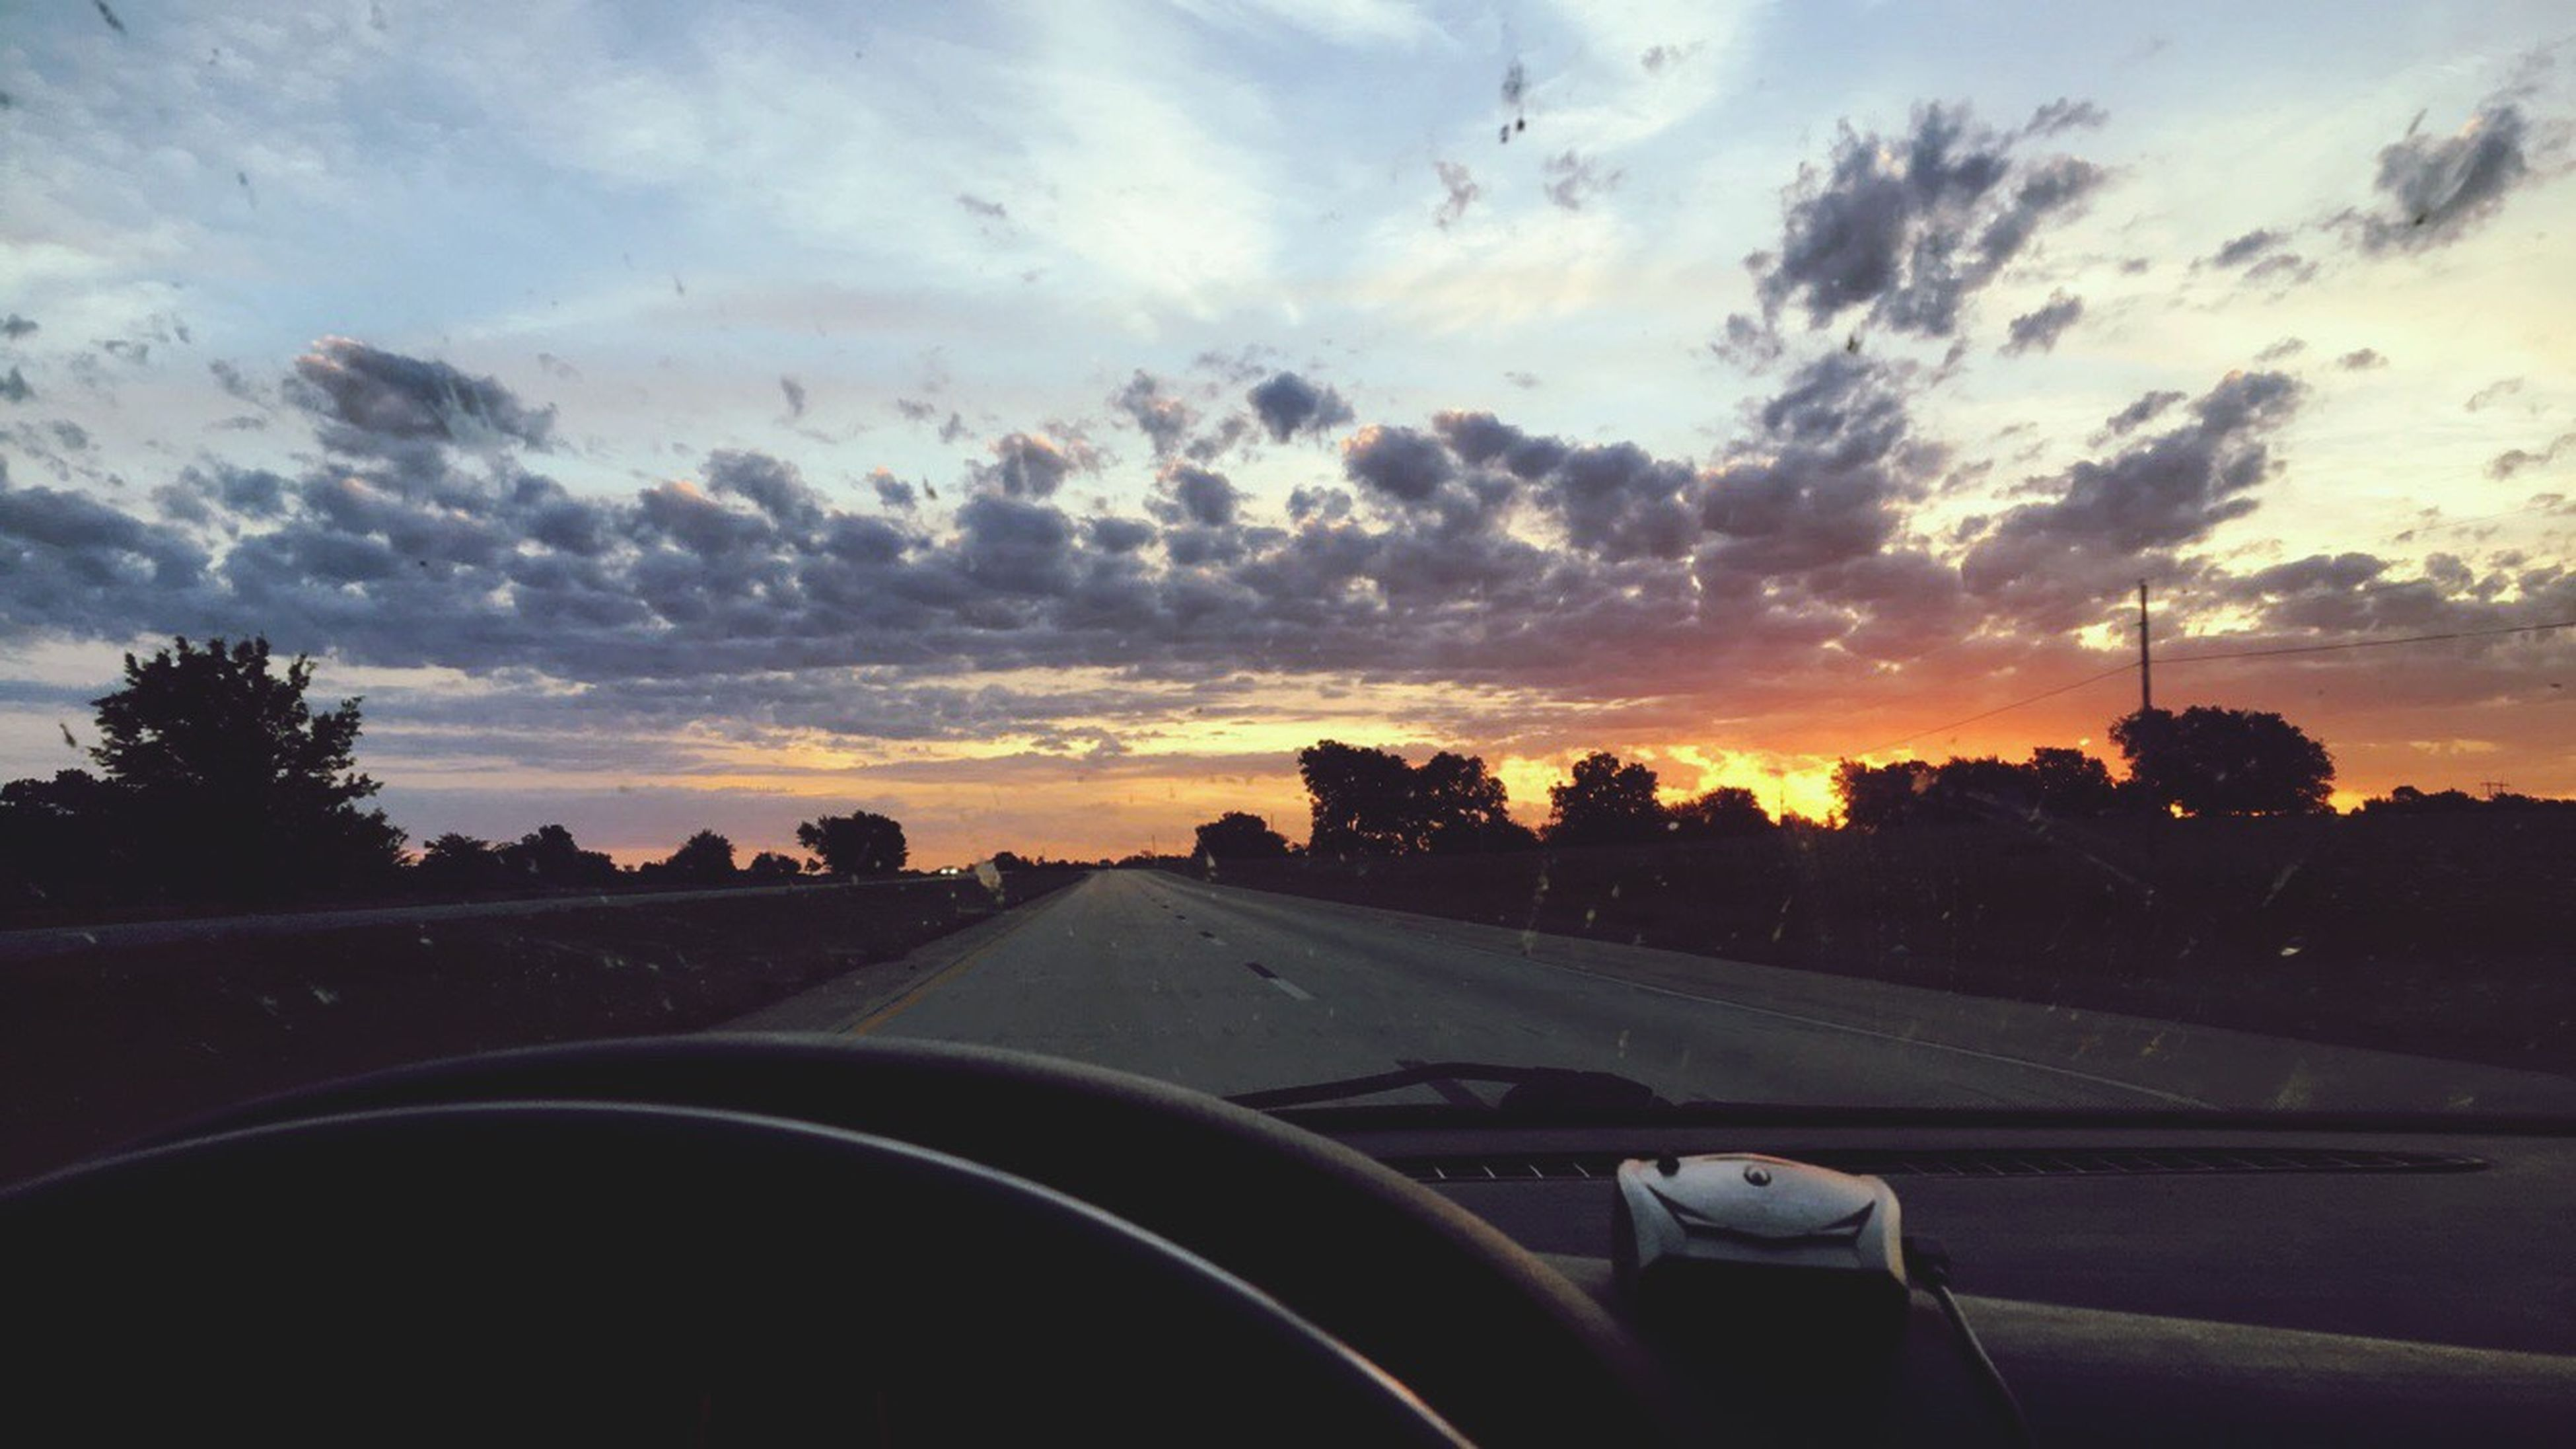 transportation, car, mode of transport, land vehicle, road, sky, windshield, sunset, tree, the way forward, road marking, cloud - sky, car interior, vehicle interior, travel, silhouette, diminishing perspective, on the move, car point of view, street